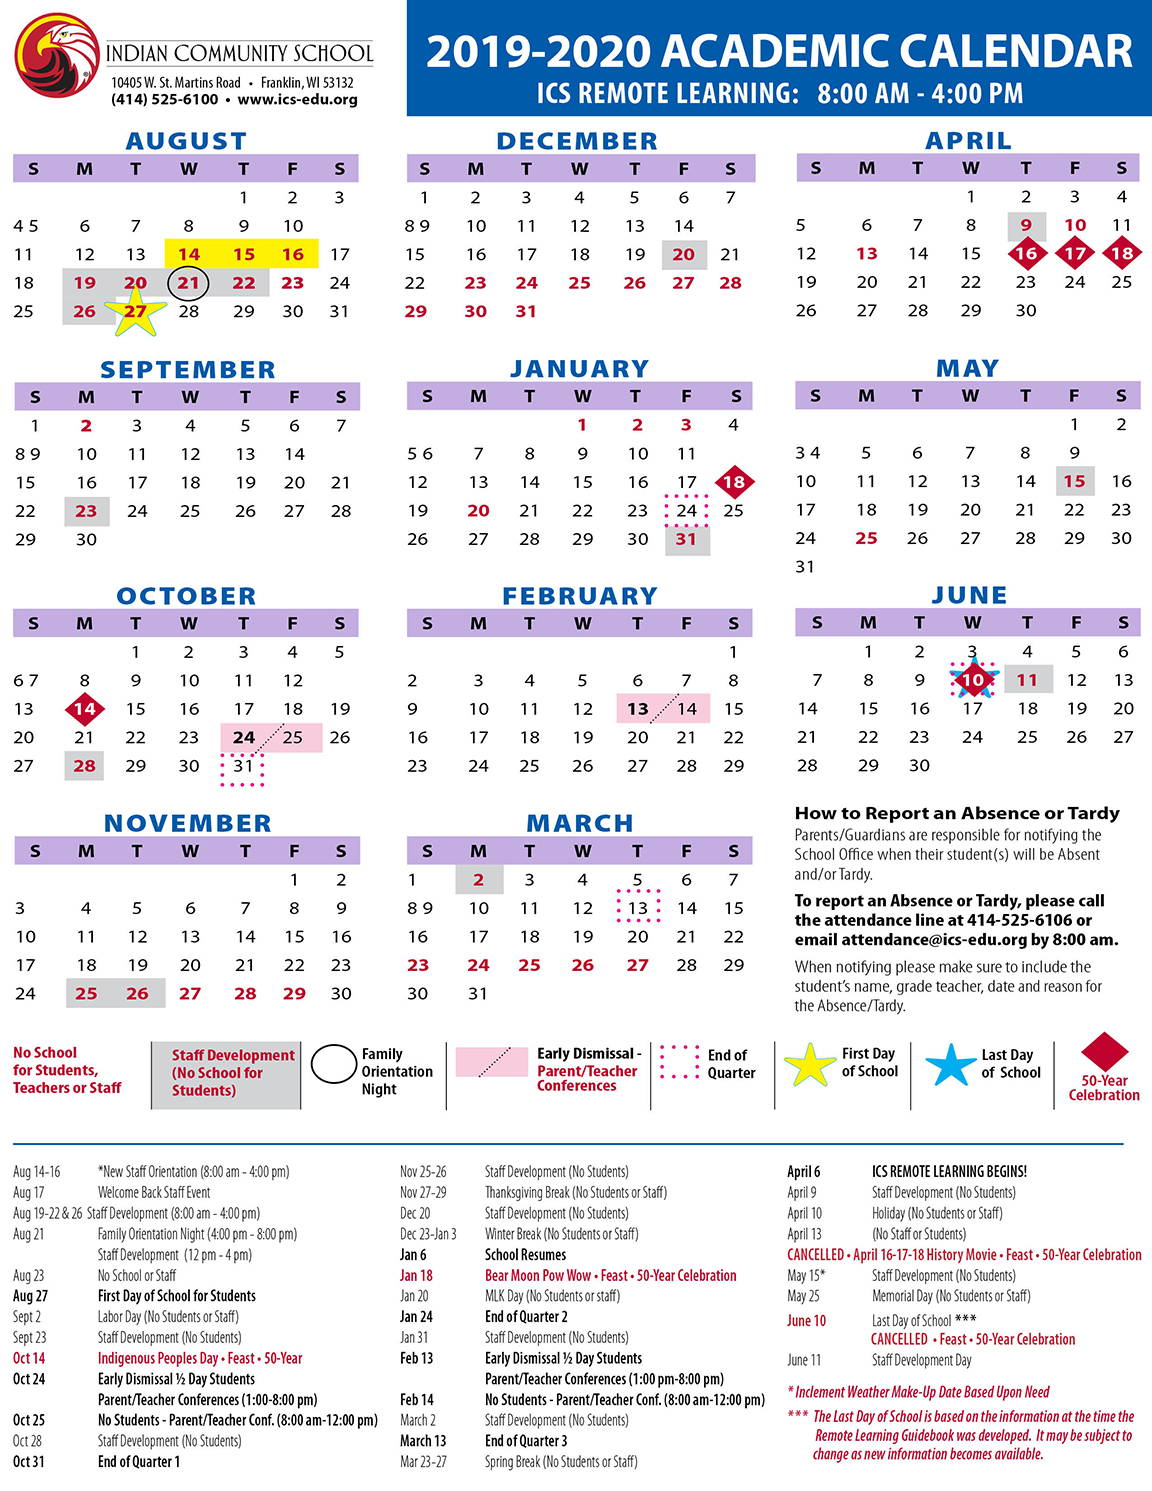 ICS 2019-2020 Academic Calendar revised for Remote Learning